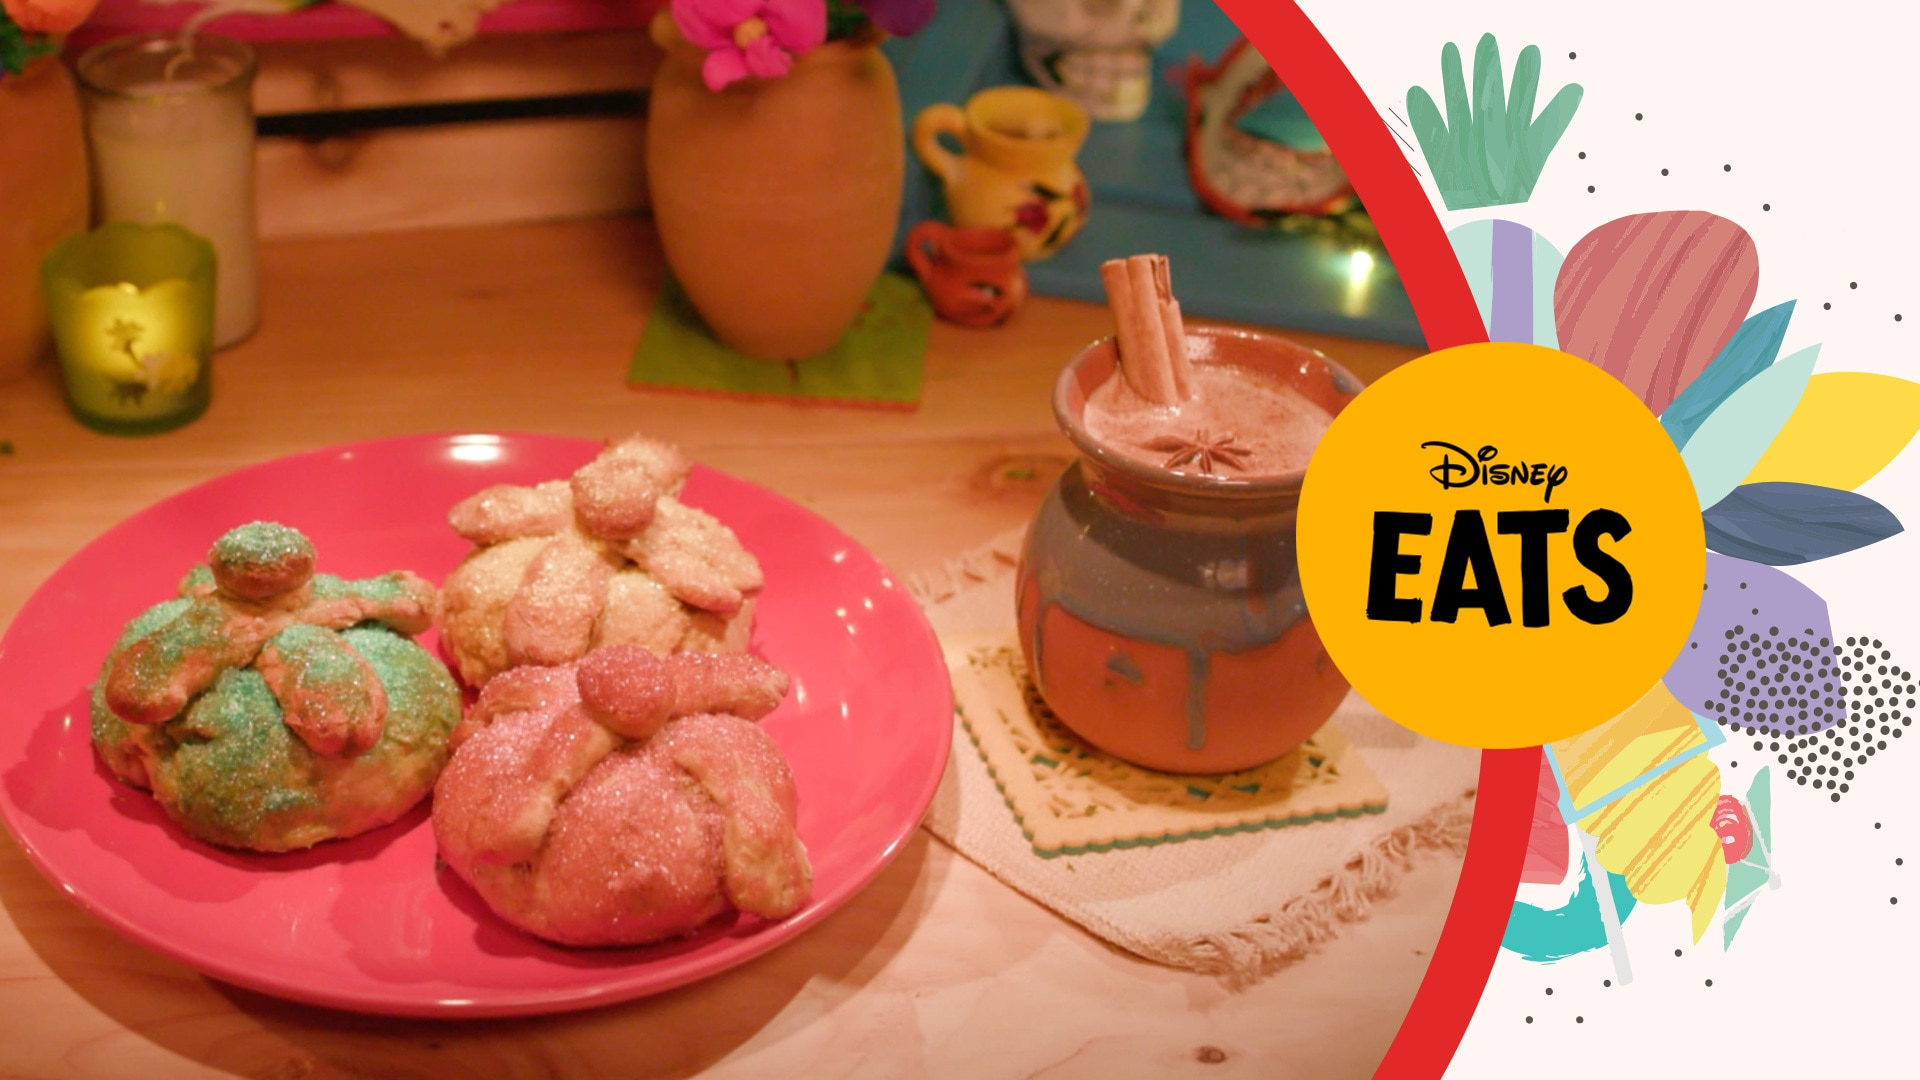 Coco Inspired Pan de Muerto & Hot Chocolate | Disney Eats